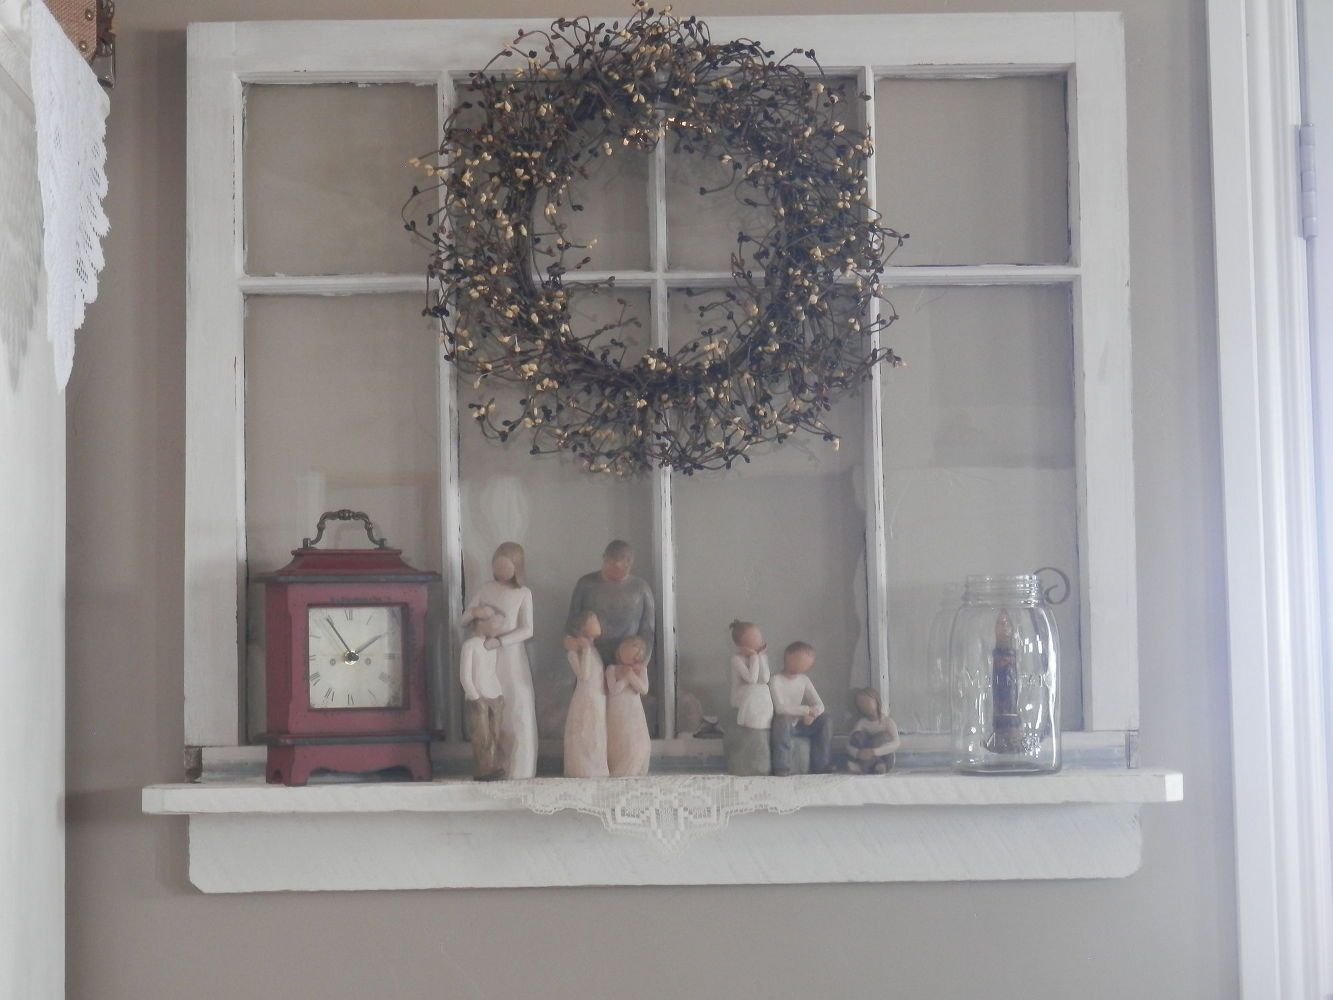 Window shelf decor  repurposed old window to shelf decoration  old nasty door decor